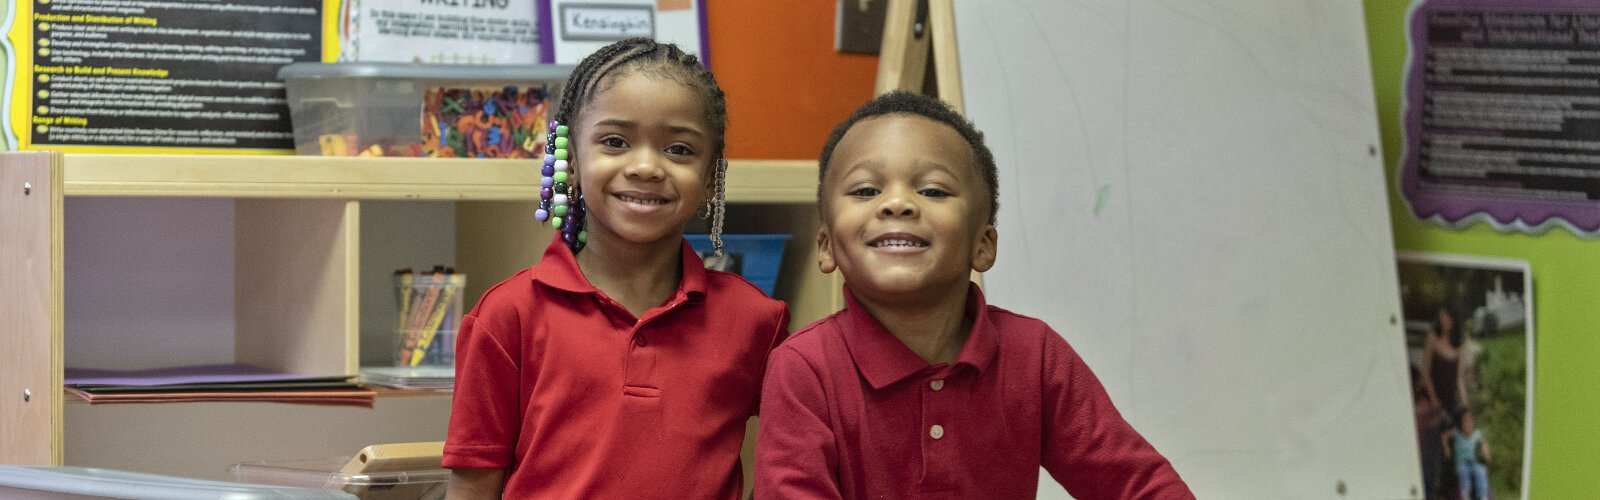 TOTally Kids Learning Center in Western Hills received a five-star Step Up to Quality Rating from the state thanks, in part, to money from Cincinnati Preschool Promise.